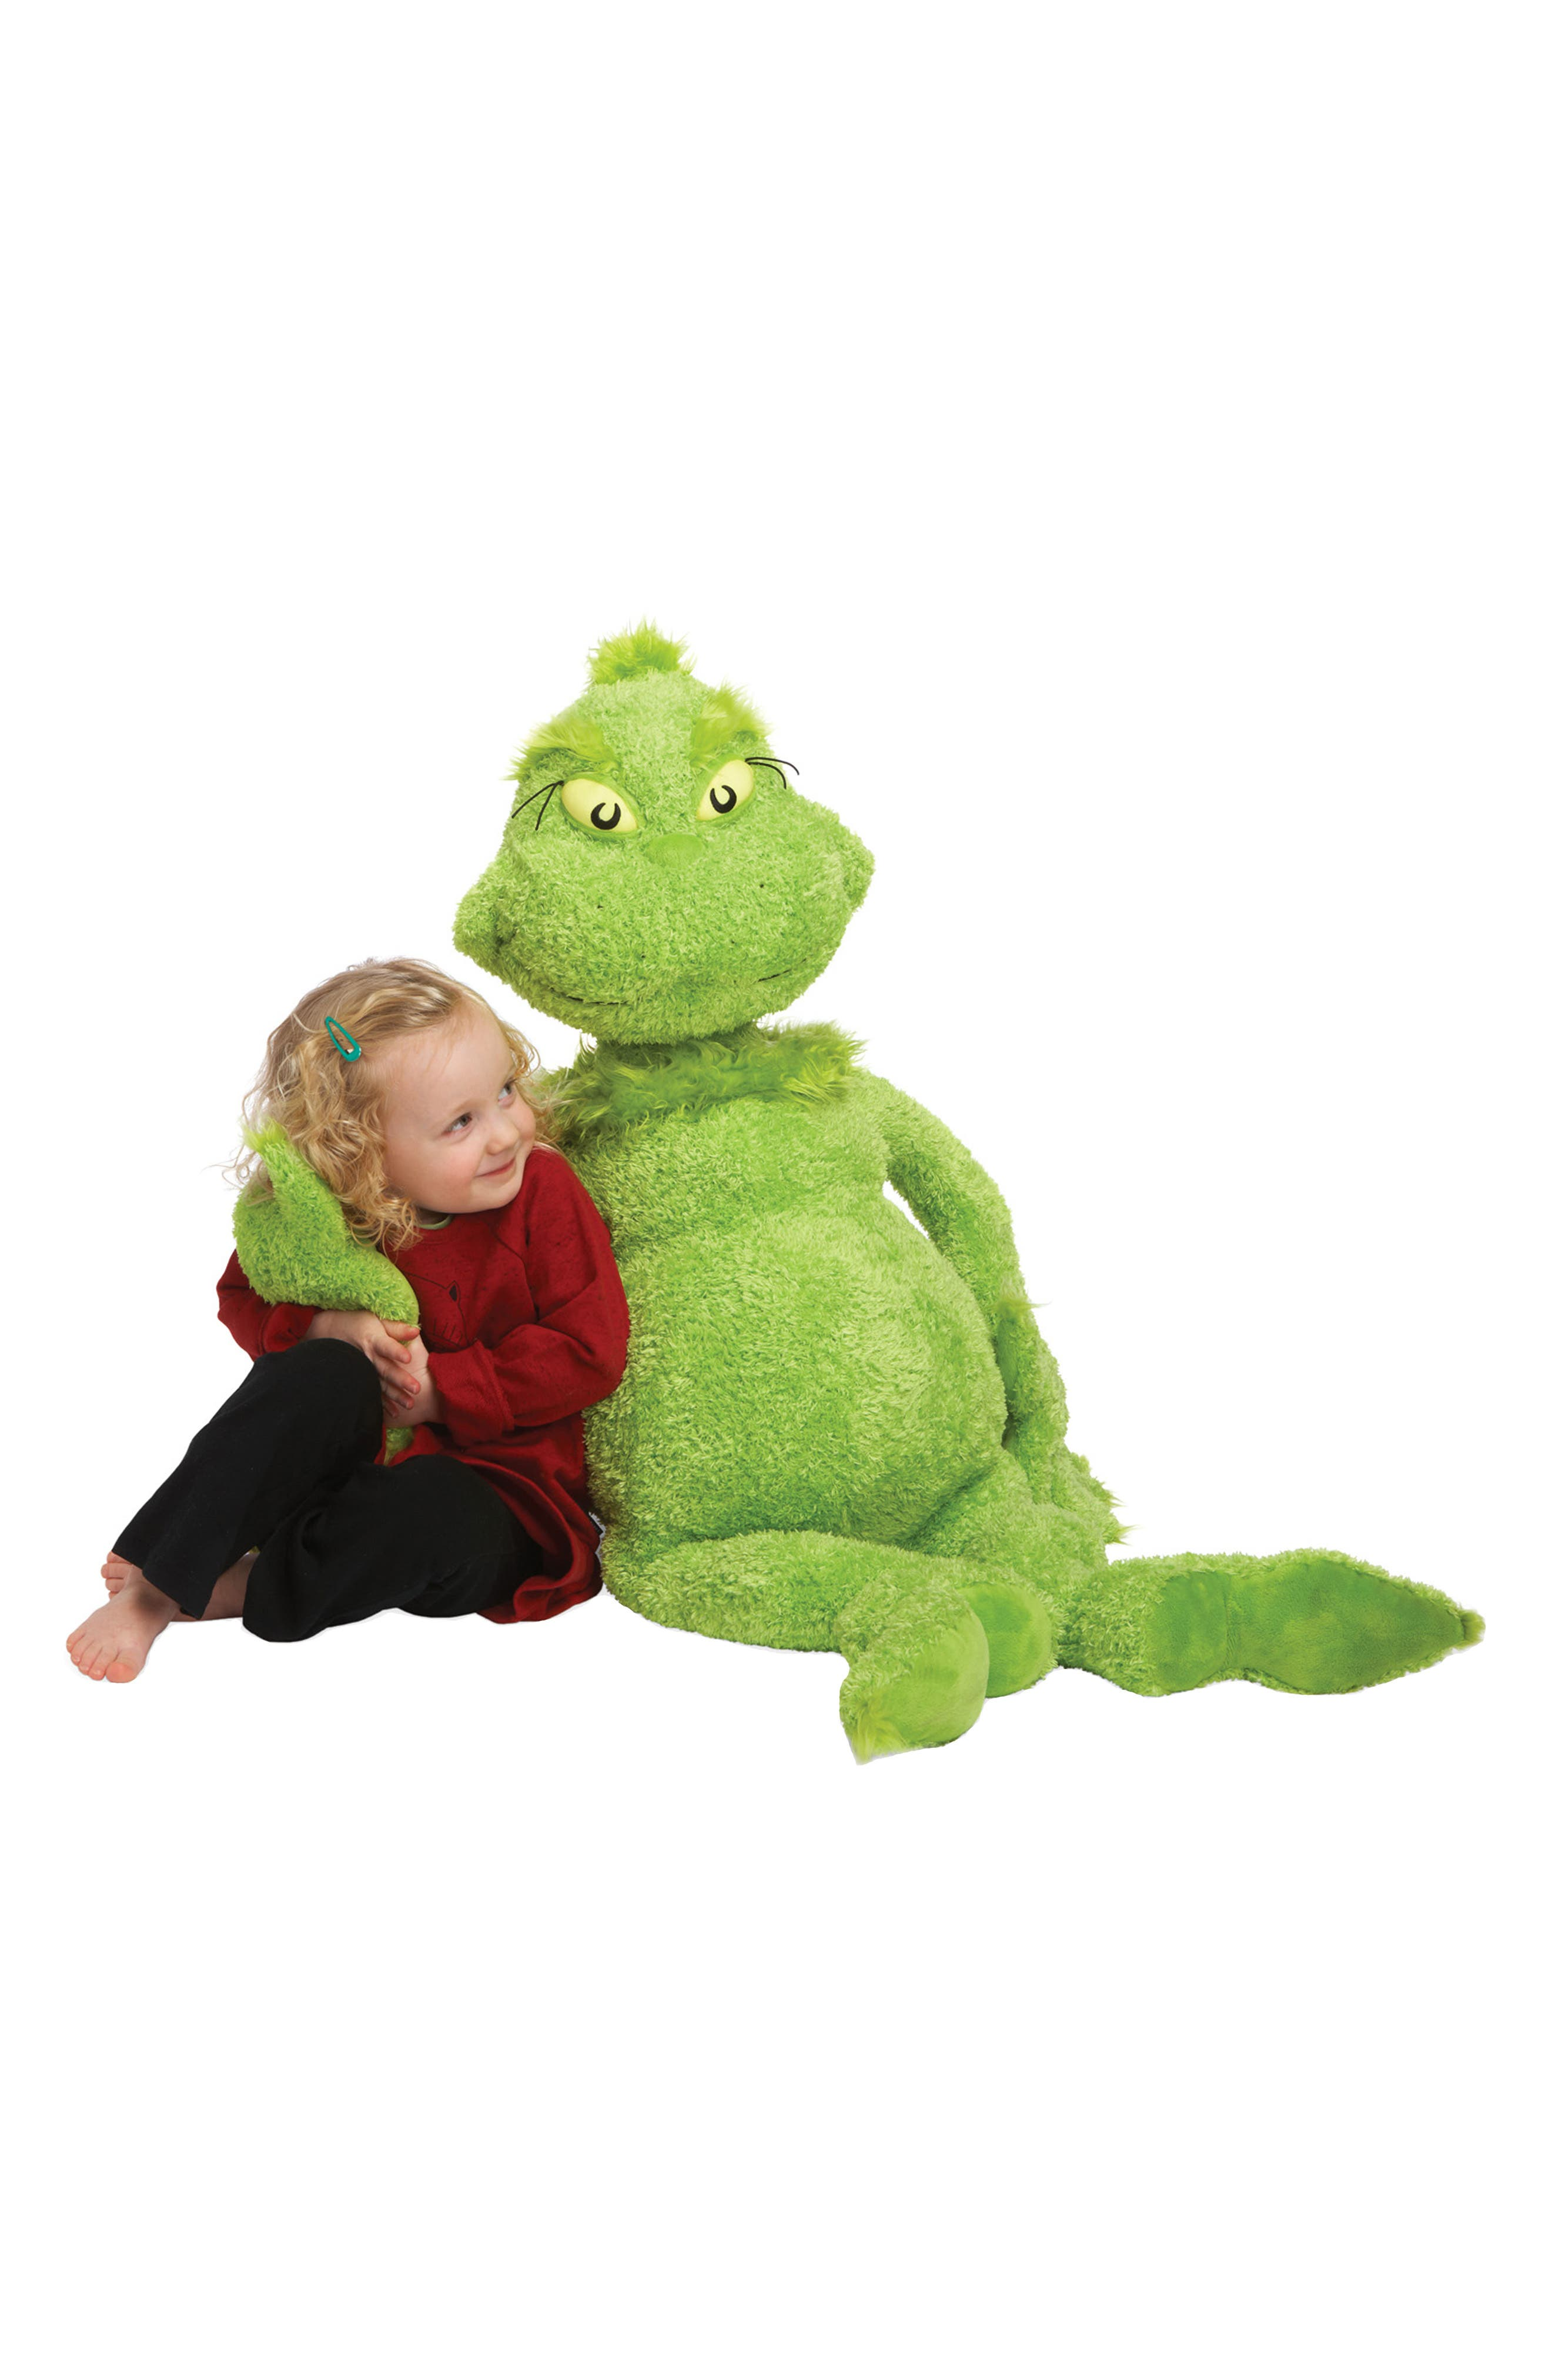 Dr. Seuss -The Grinch Stuffed Toy,                             Alternate thumbnail 3, color,                             300